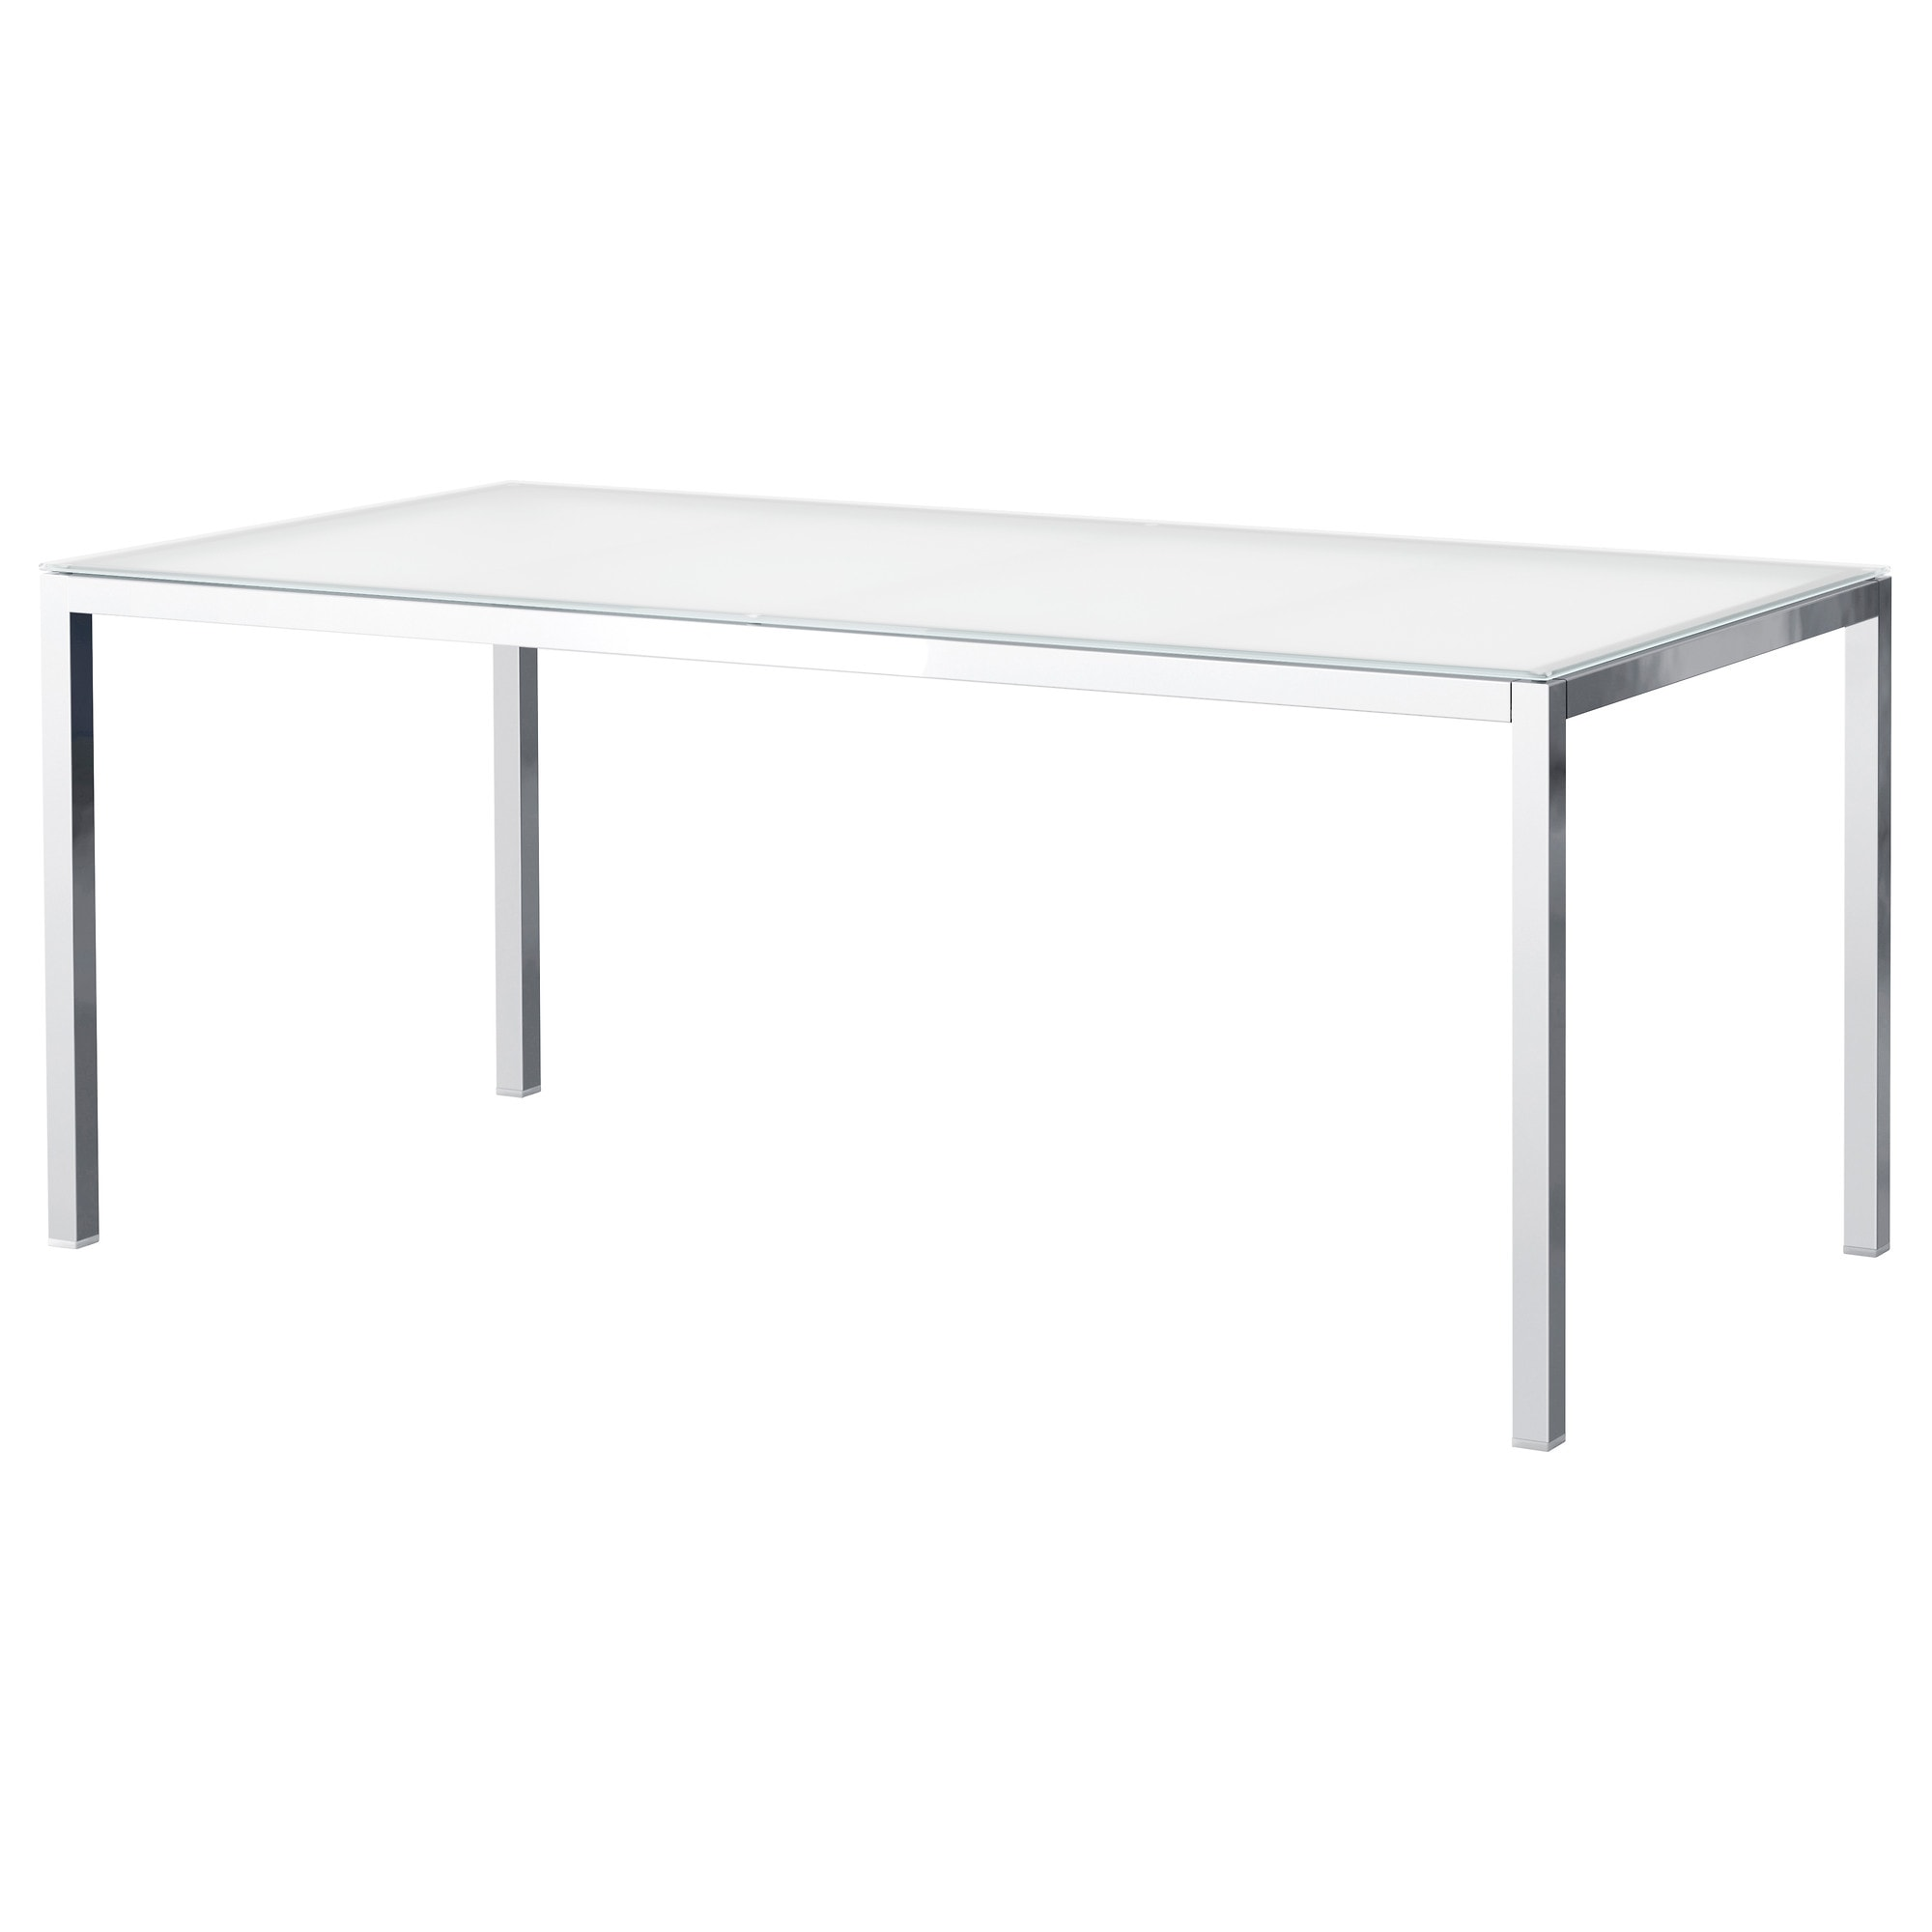 Table en verre salle a manger ikea table de lit for Table basse en verre ikea